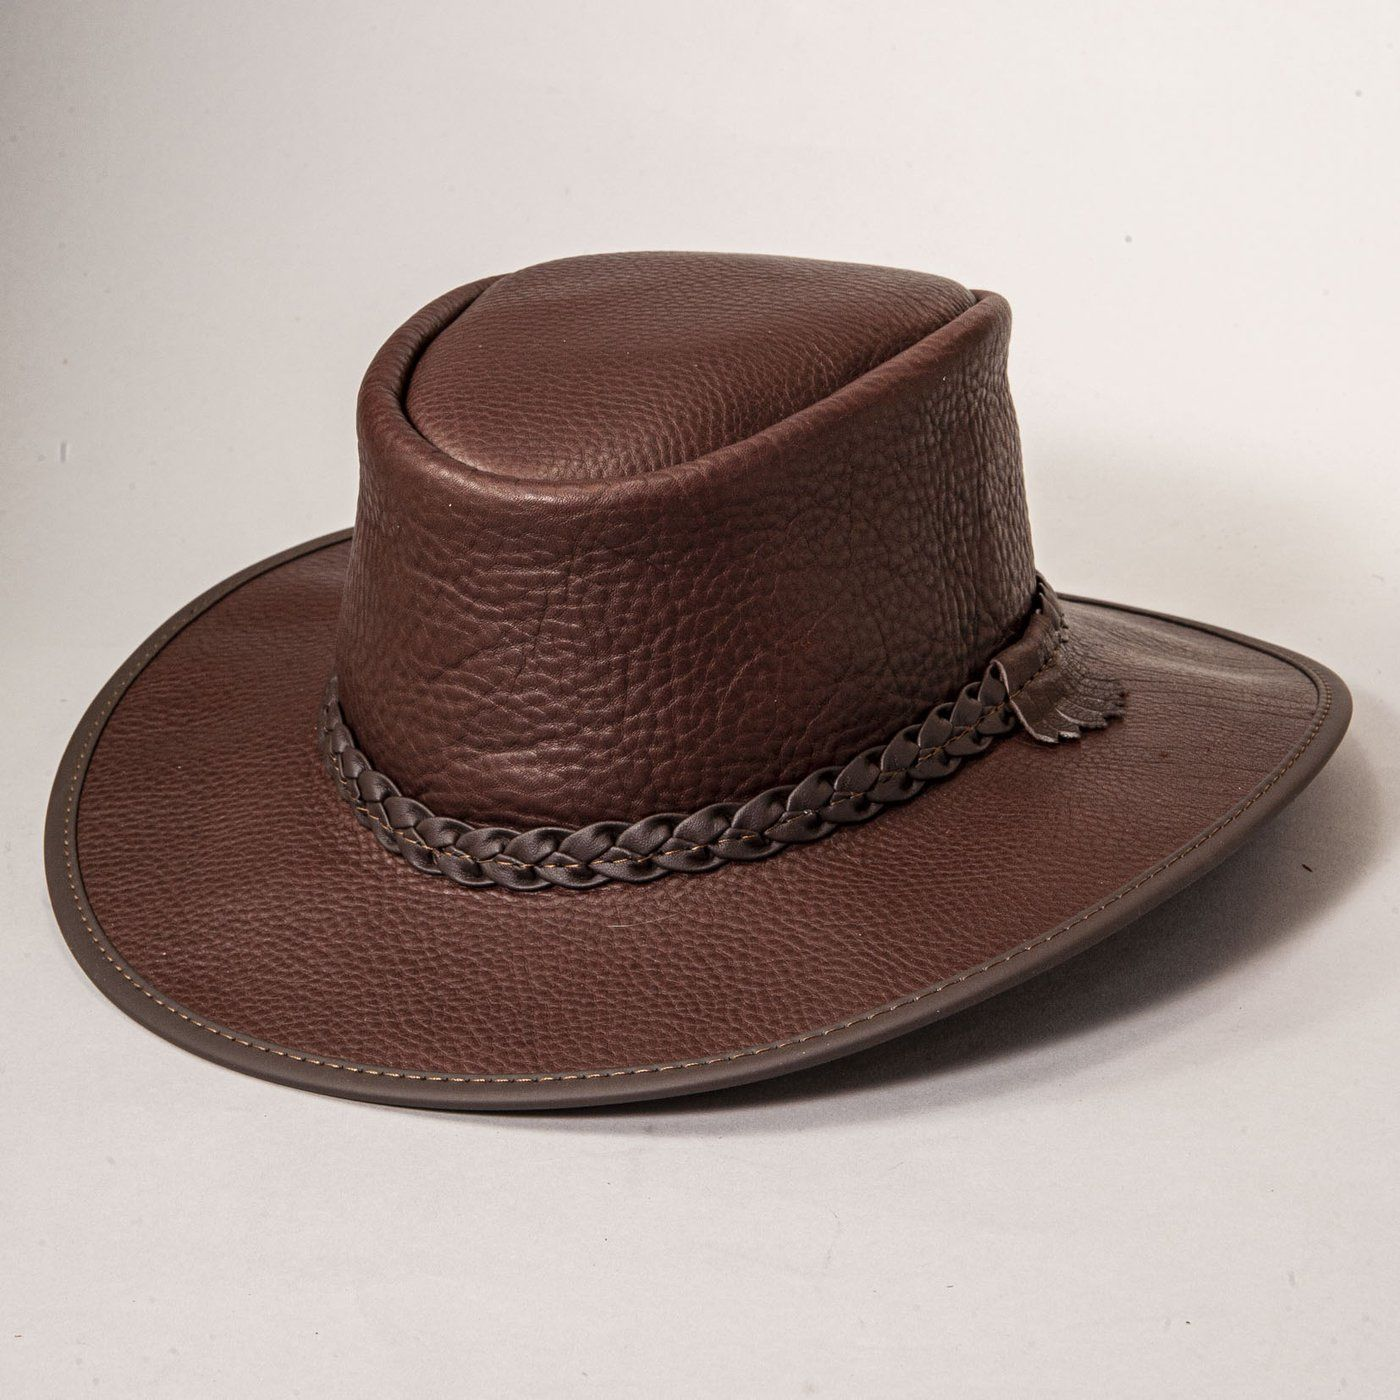 Bison Tennial Leather Packable Hat Leather Hats Buffalo Leather Bison Leather